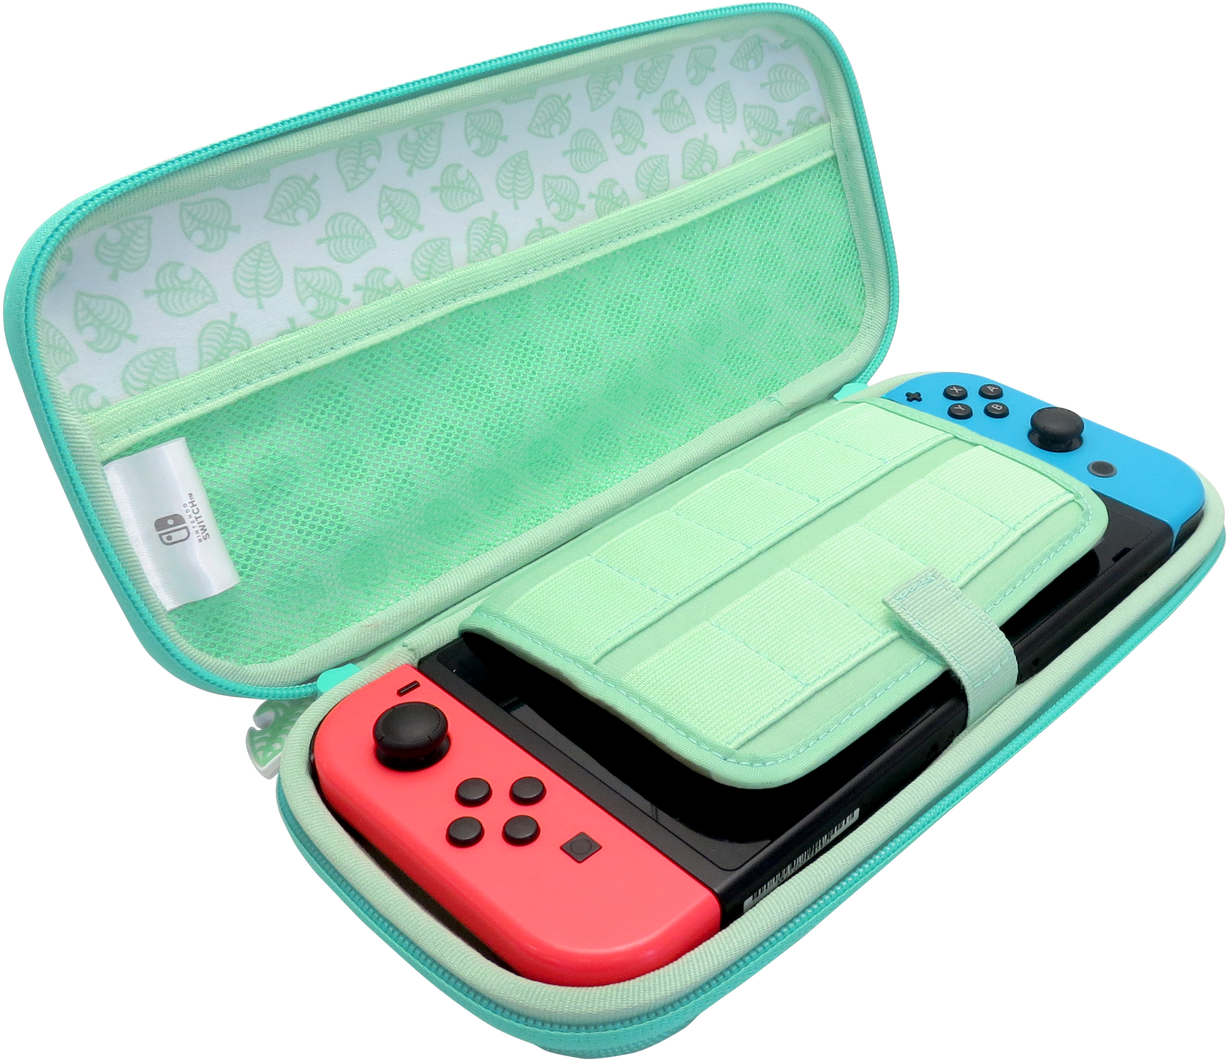 Hori Animal Crossing New Horizons Case Accessories Announced For